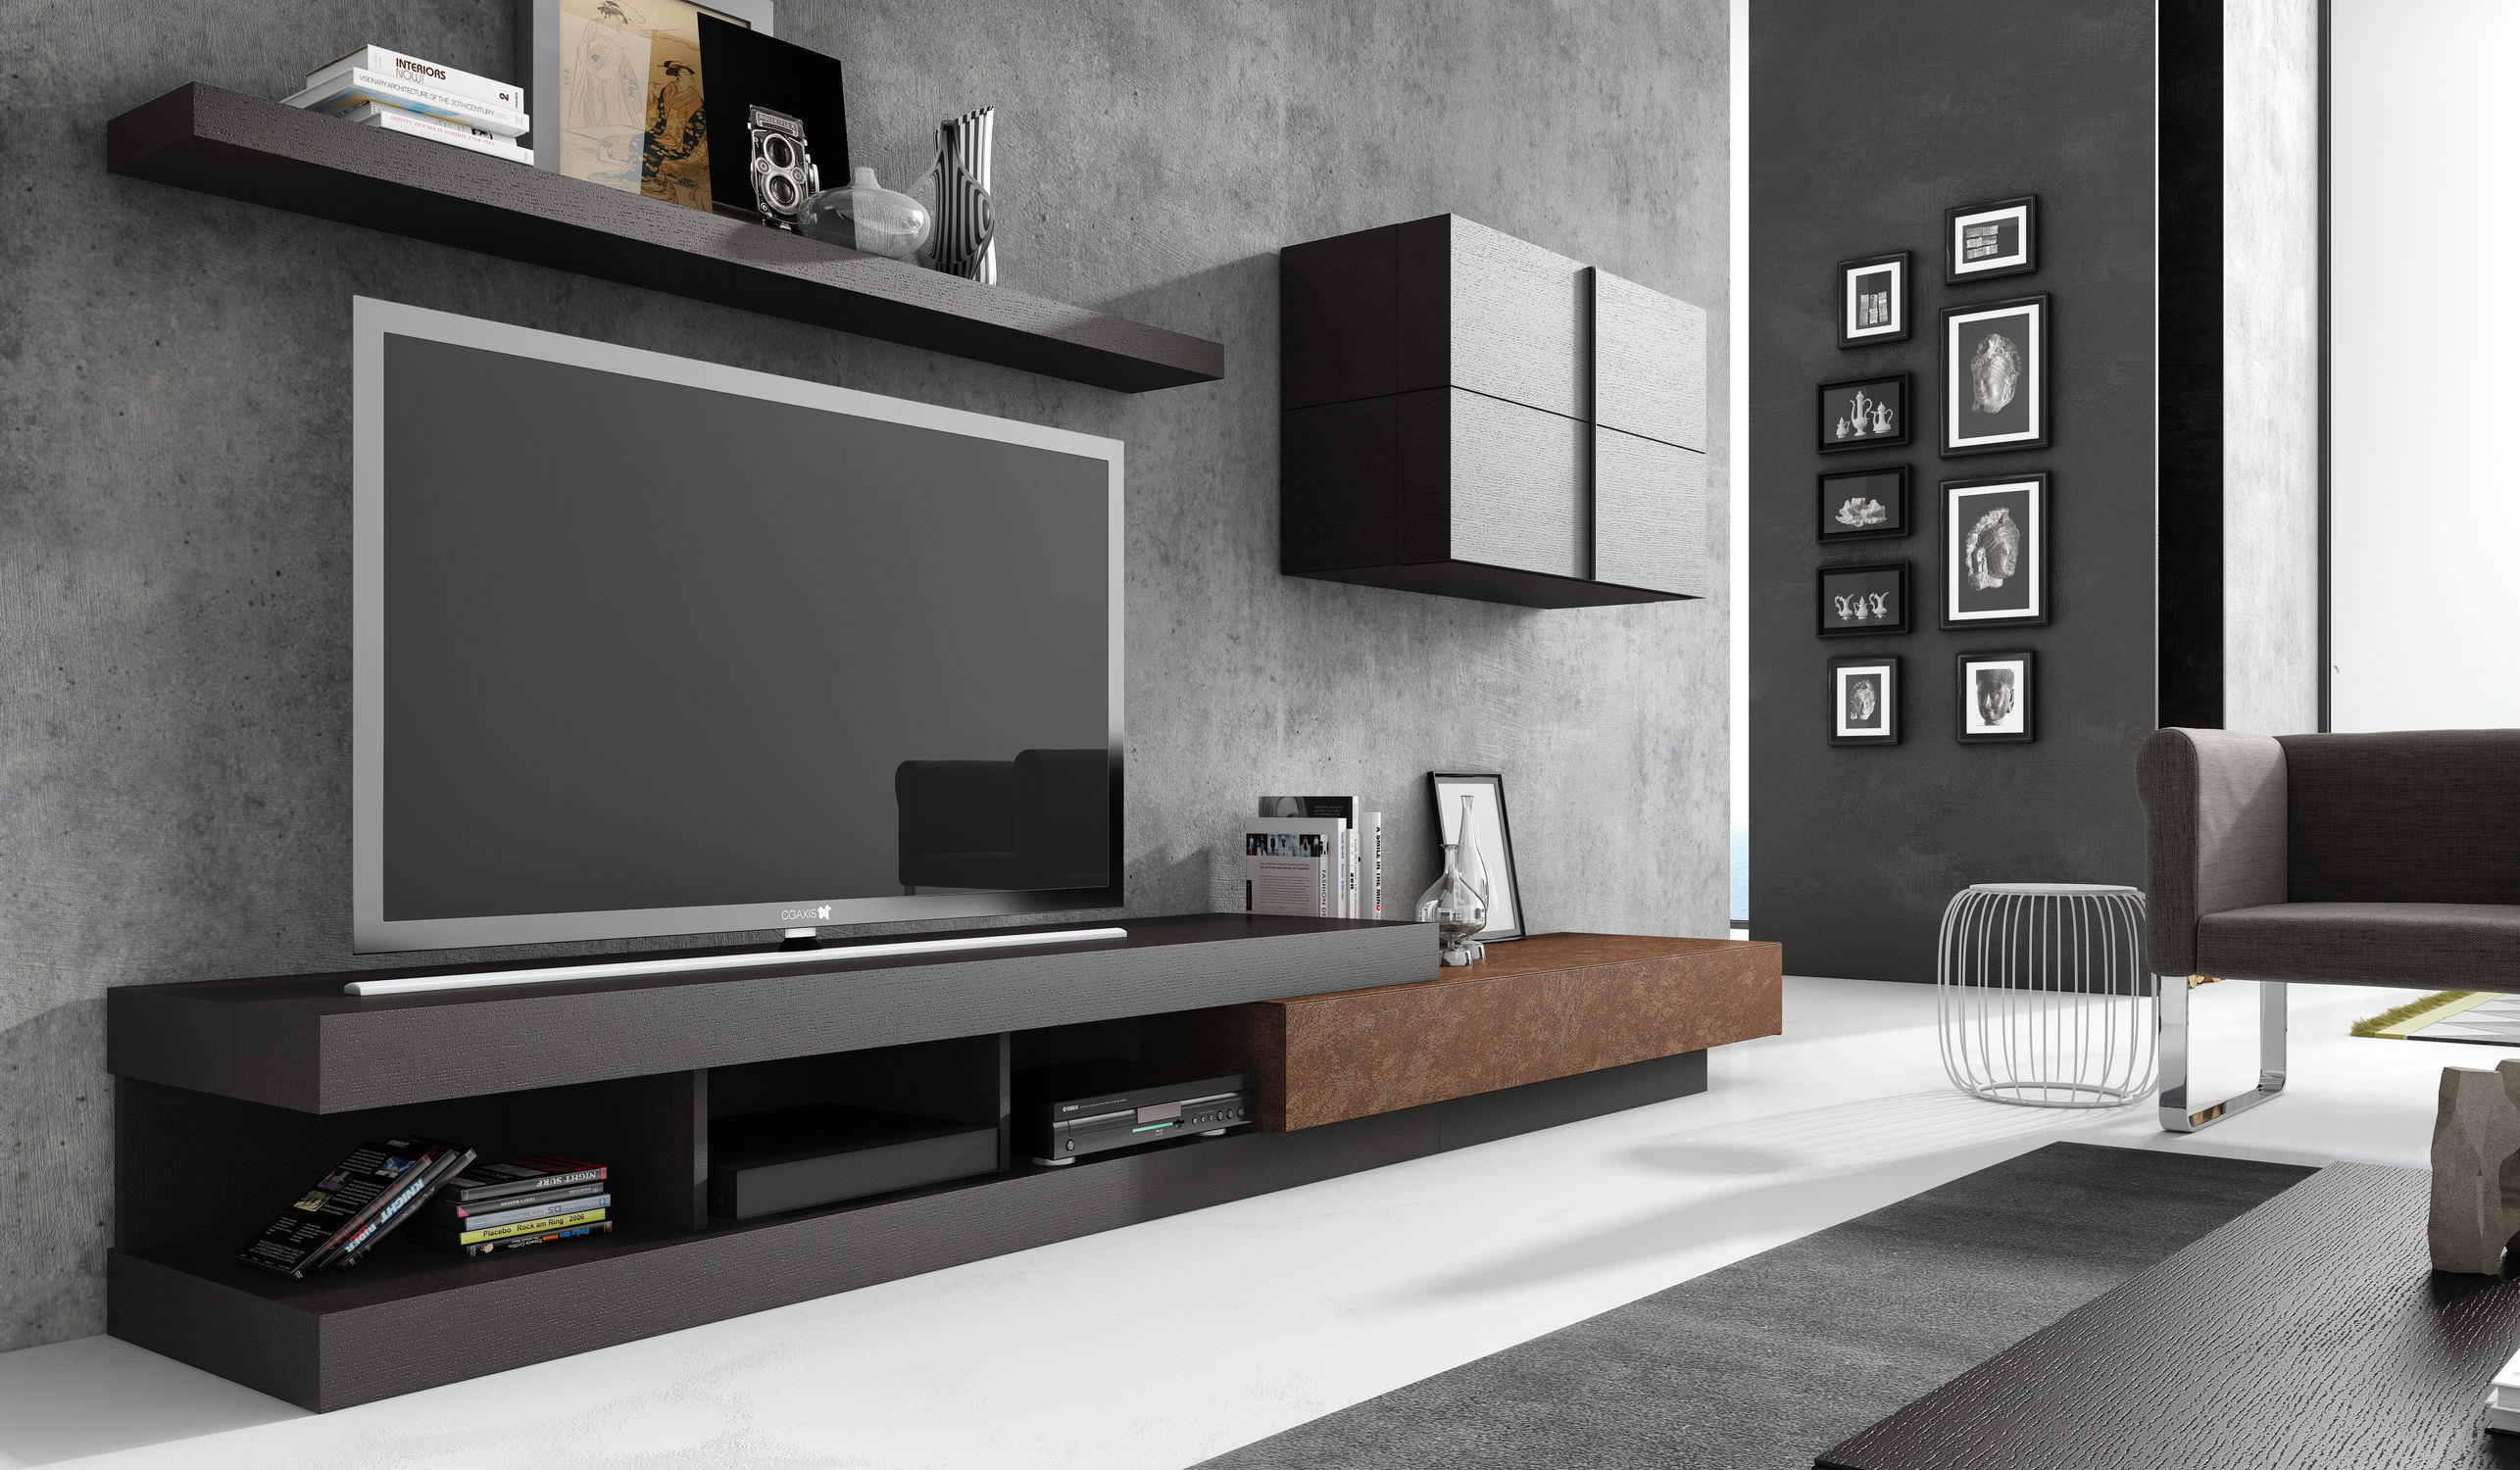 meuble de tele contemporain id es de d coration. Black Bedroom Furniture Sets. Home Design Ideas